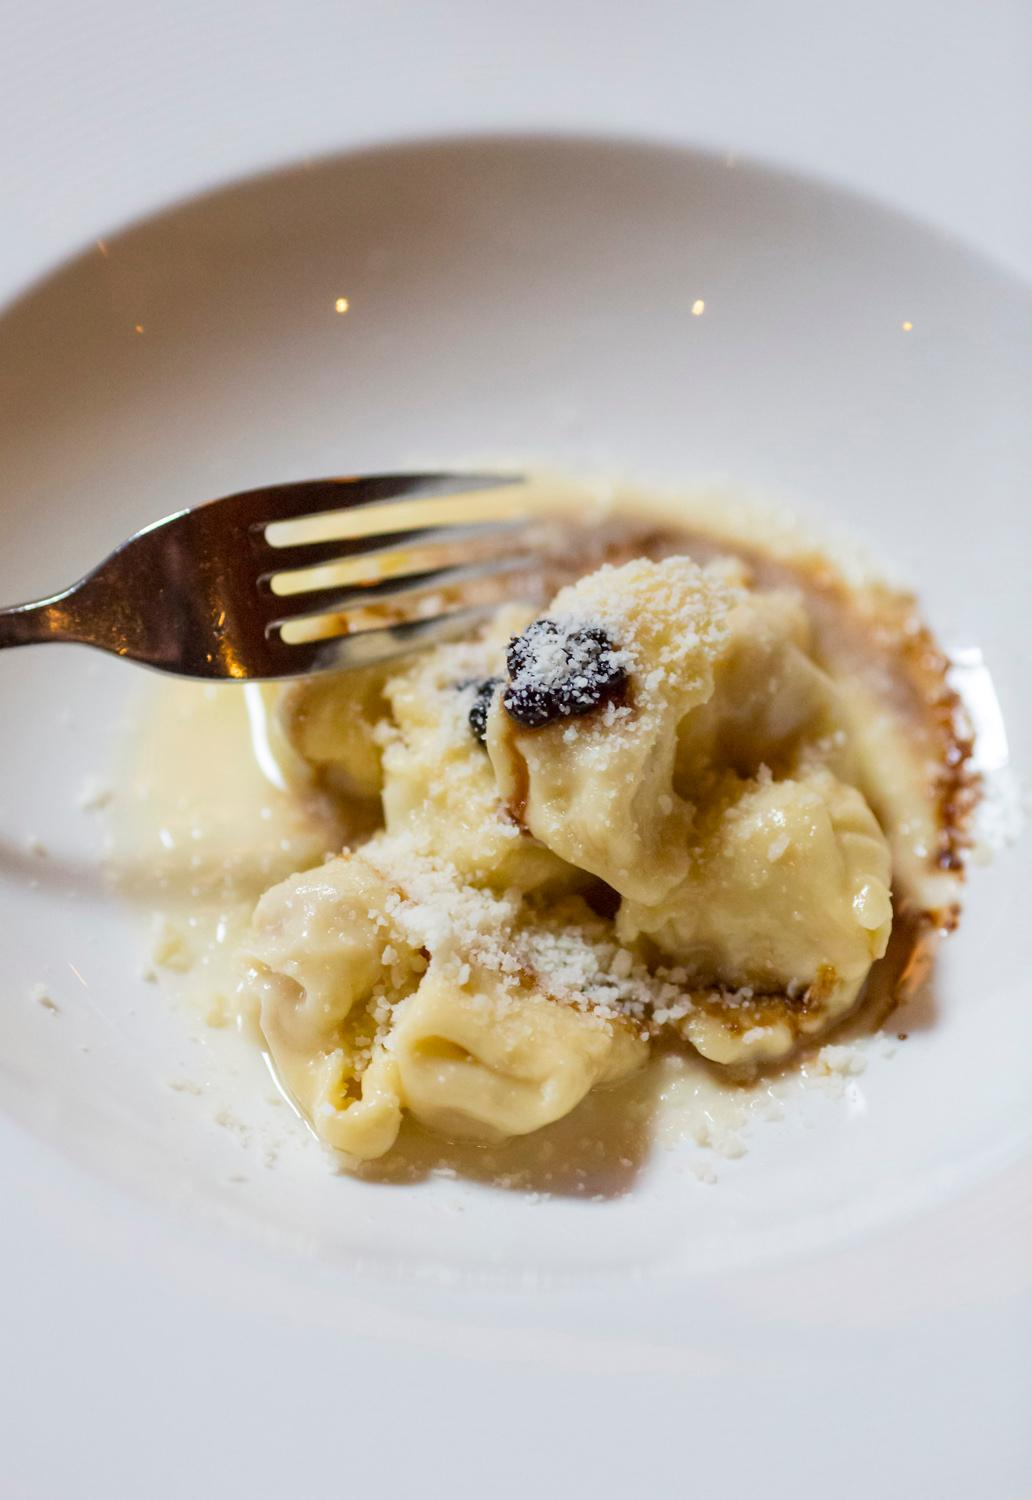 <p>Primo. Cappalletti con Fonduta di Parmigiano – Prosciutto filled cappalletti with Parmigiano fonduta and balsamic pearls (Image: Sy Bean / Seattle Refined).</p>